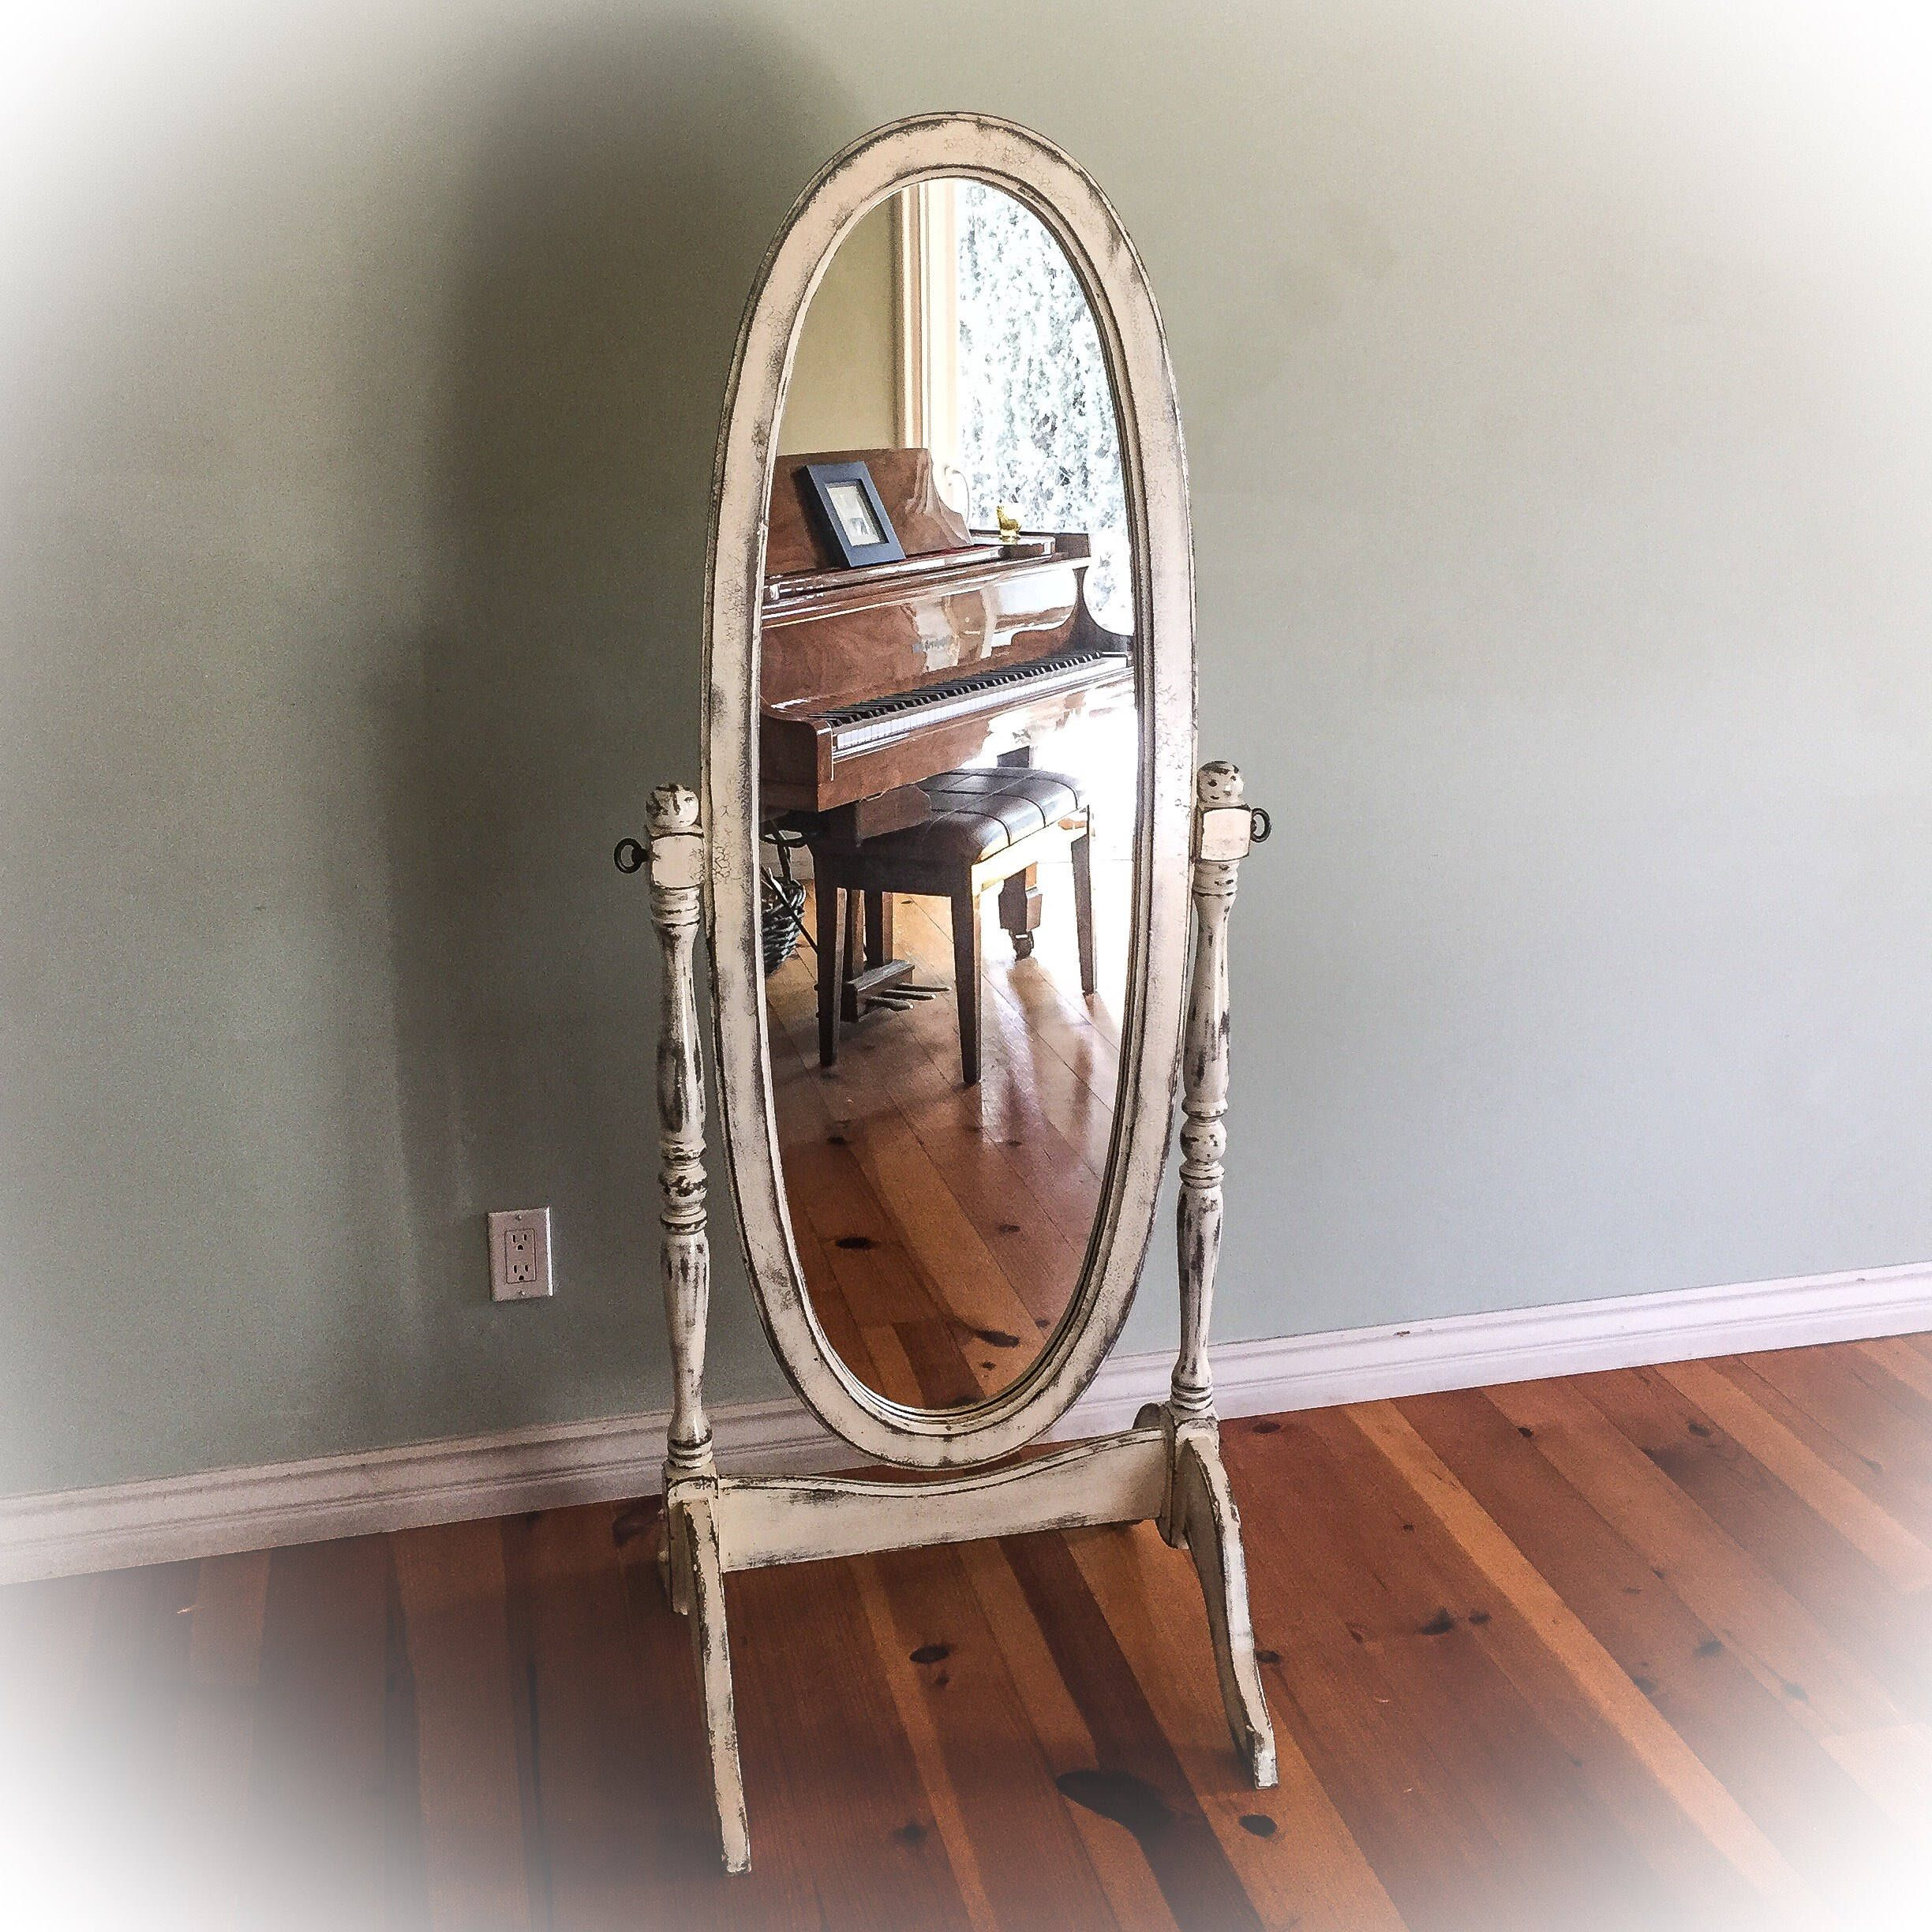 Vintage Cheval Mirror with drawer | eBay | Cheval mirror ...